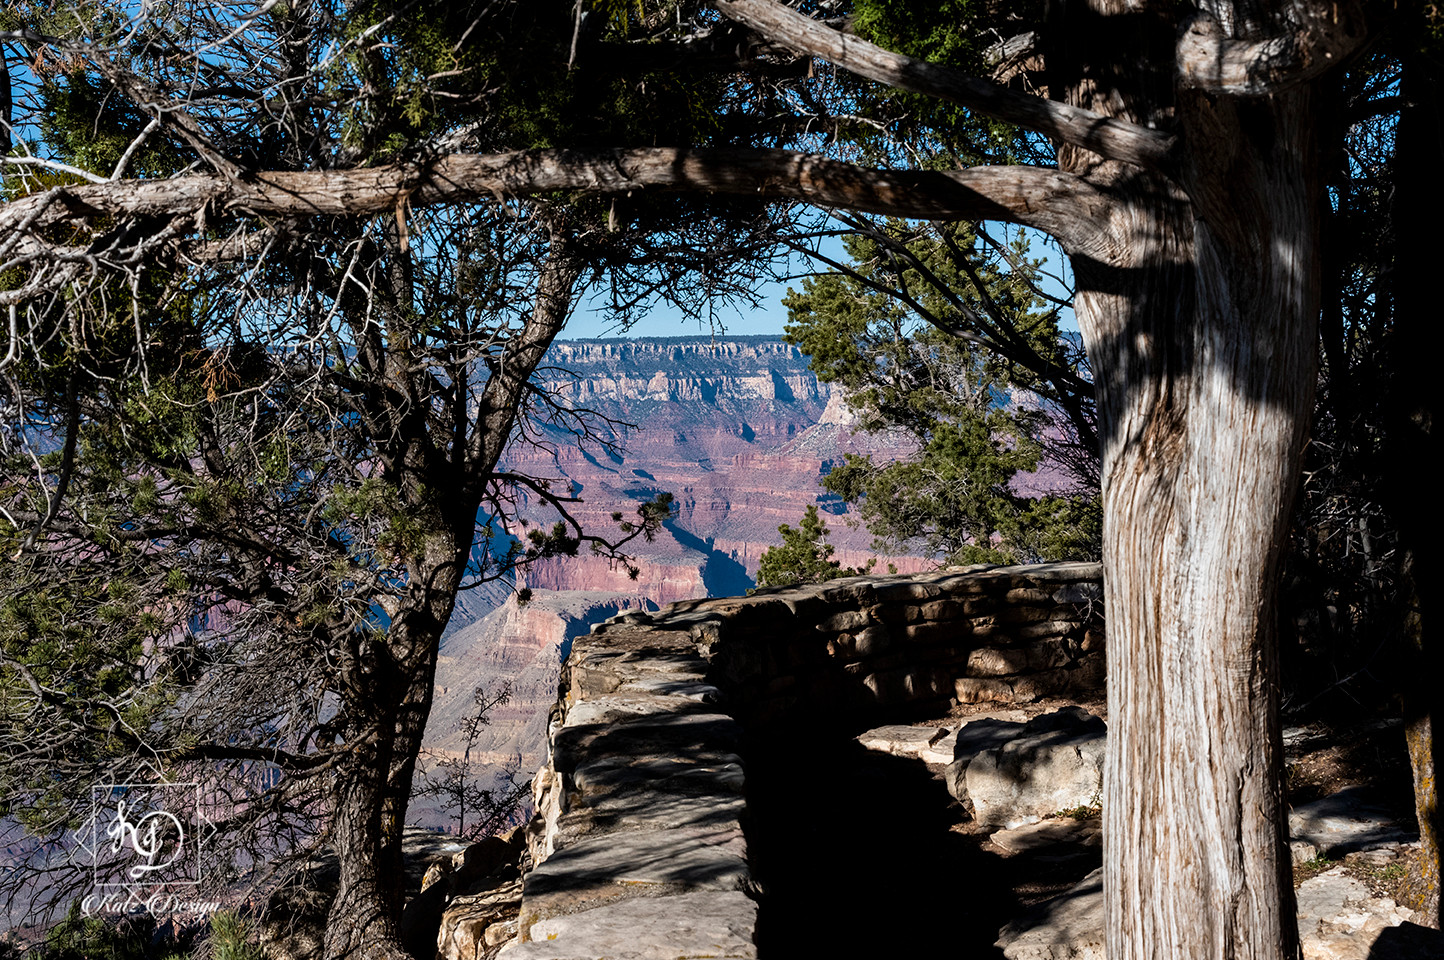 The Grand Canyon Beyond the Trees